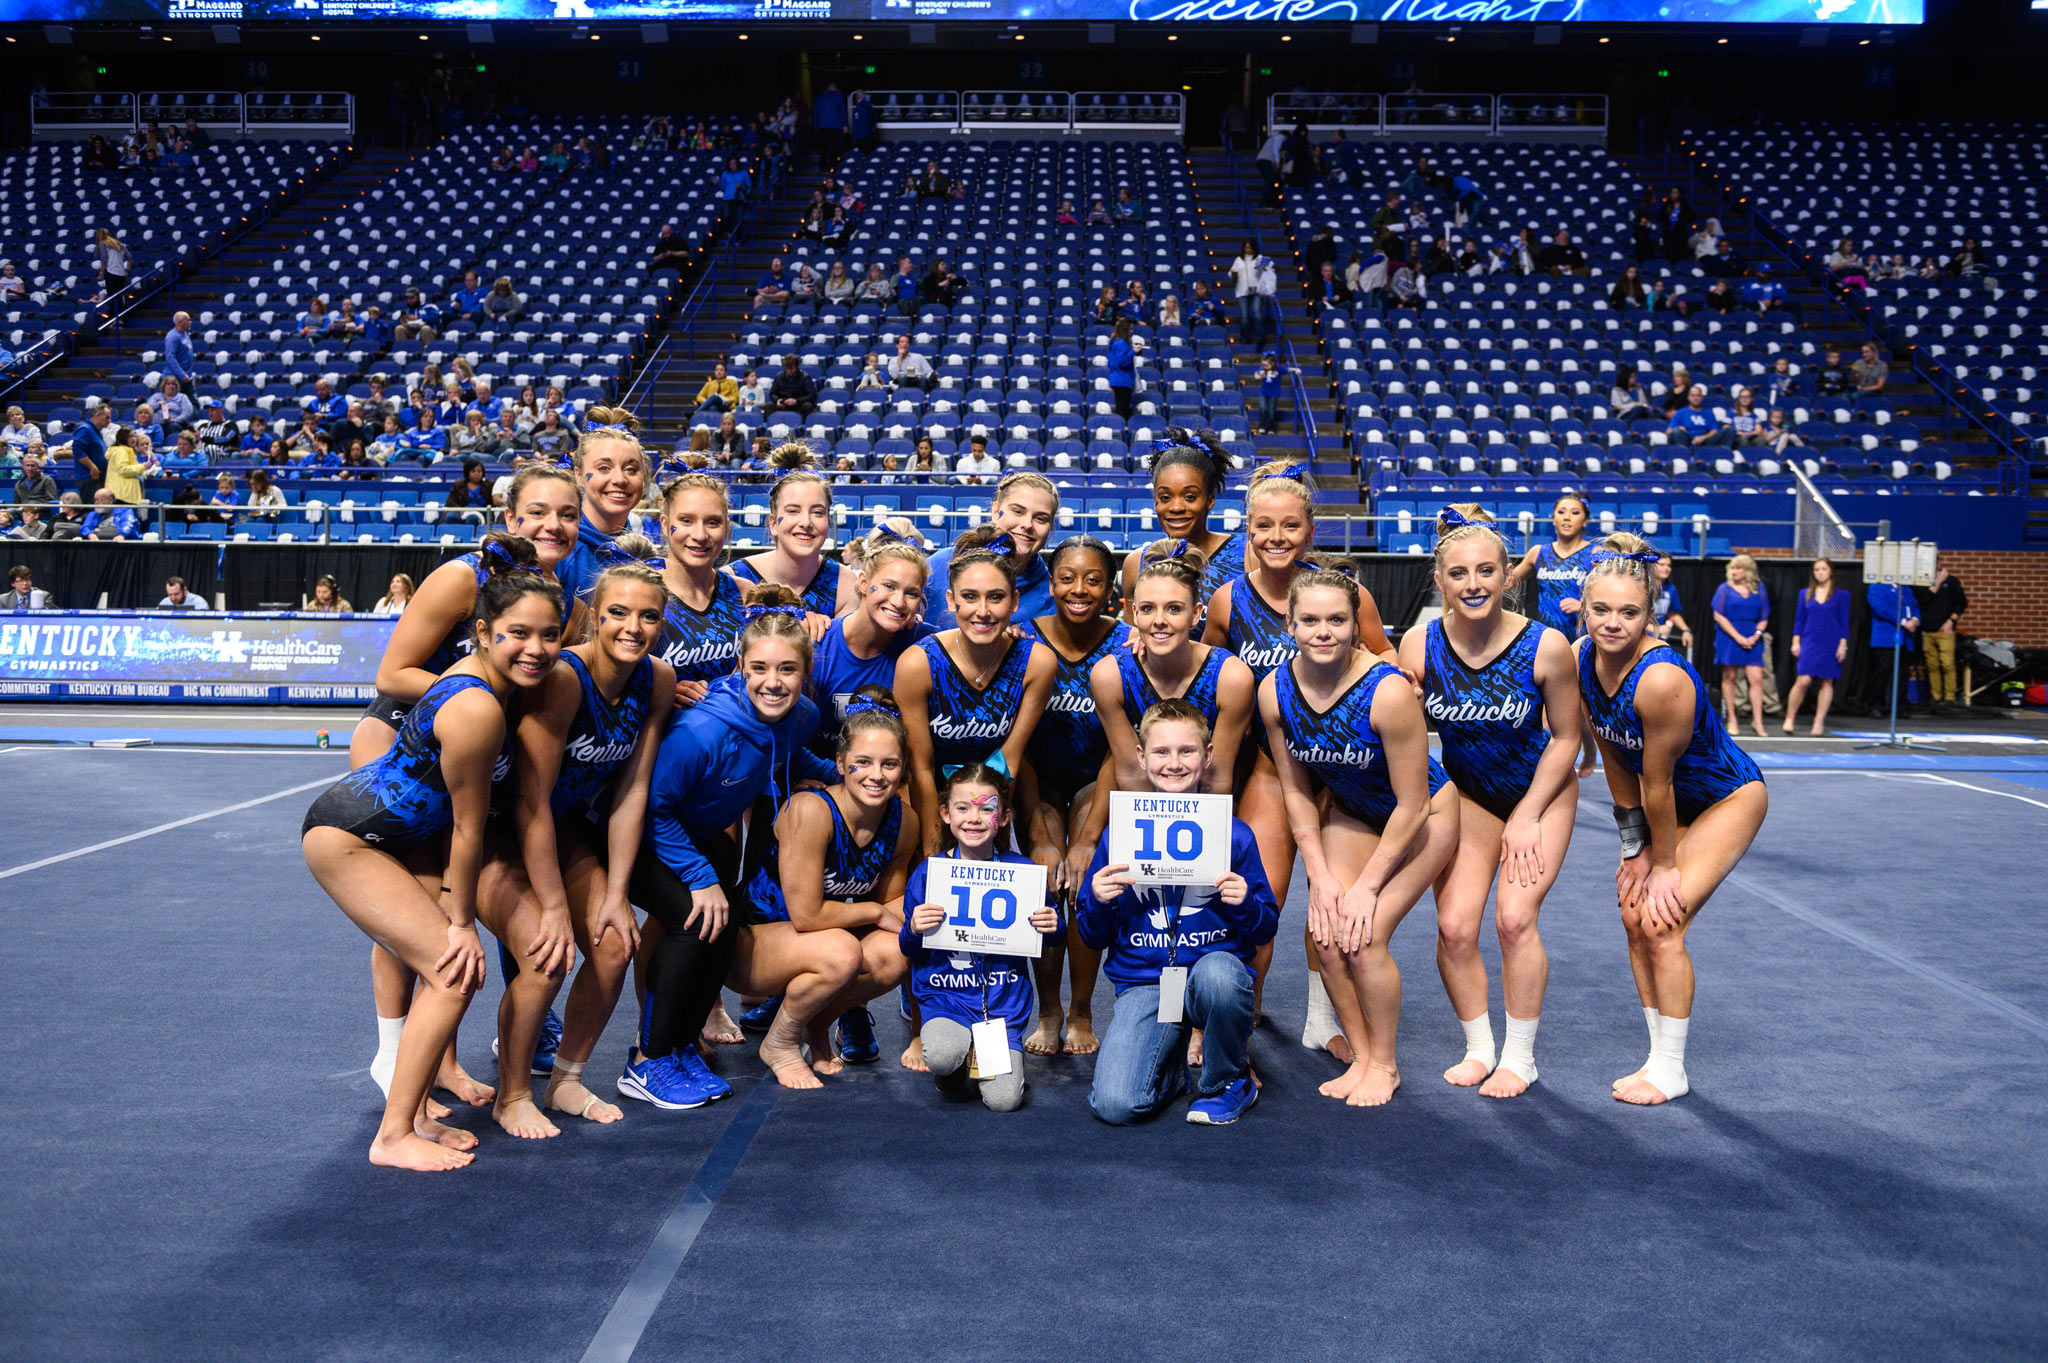 Izzy and Dalton hold signs with 10's on them and kneel in front of a group of UK gymnasts.